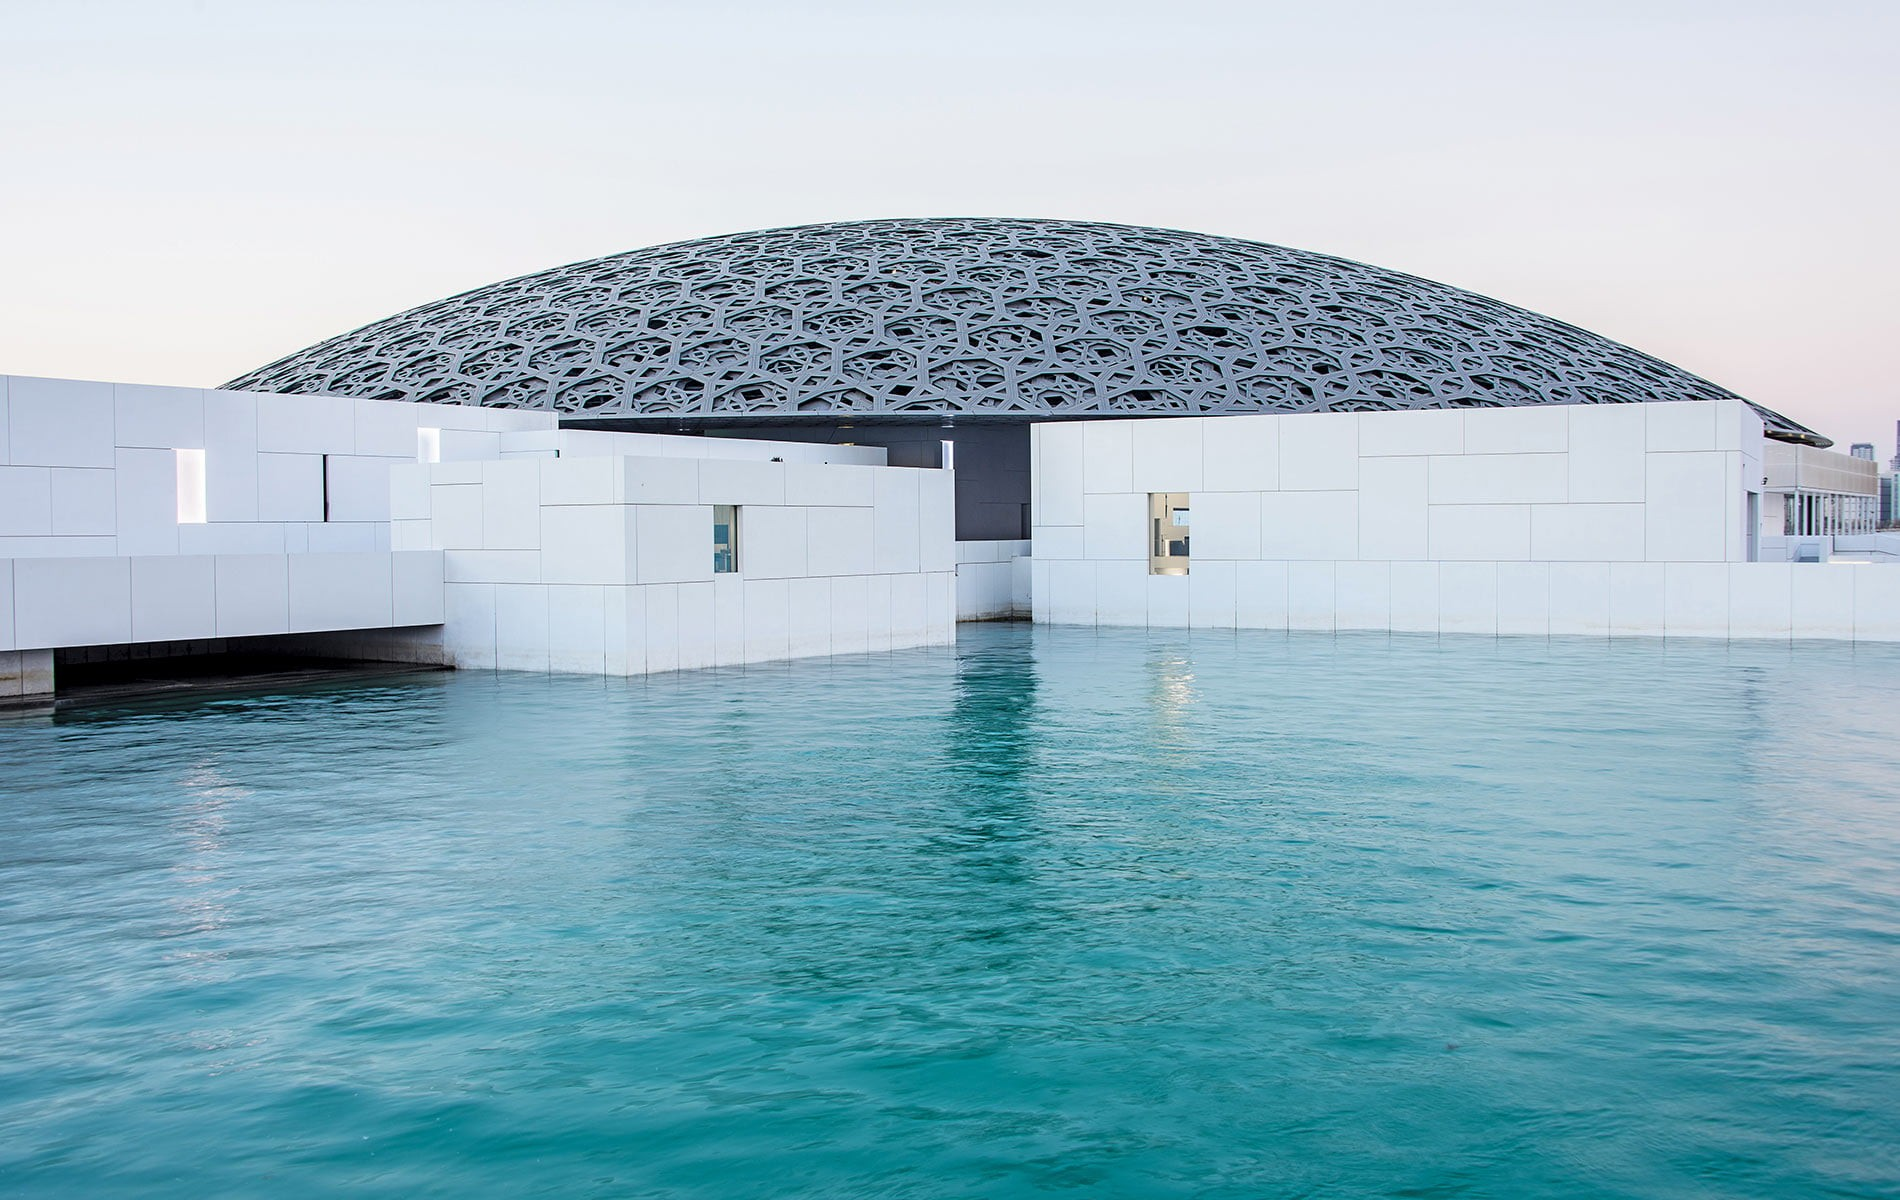 Abu Dhabi With Louver Museum